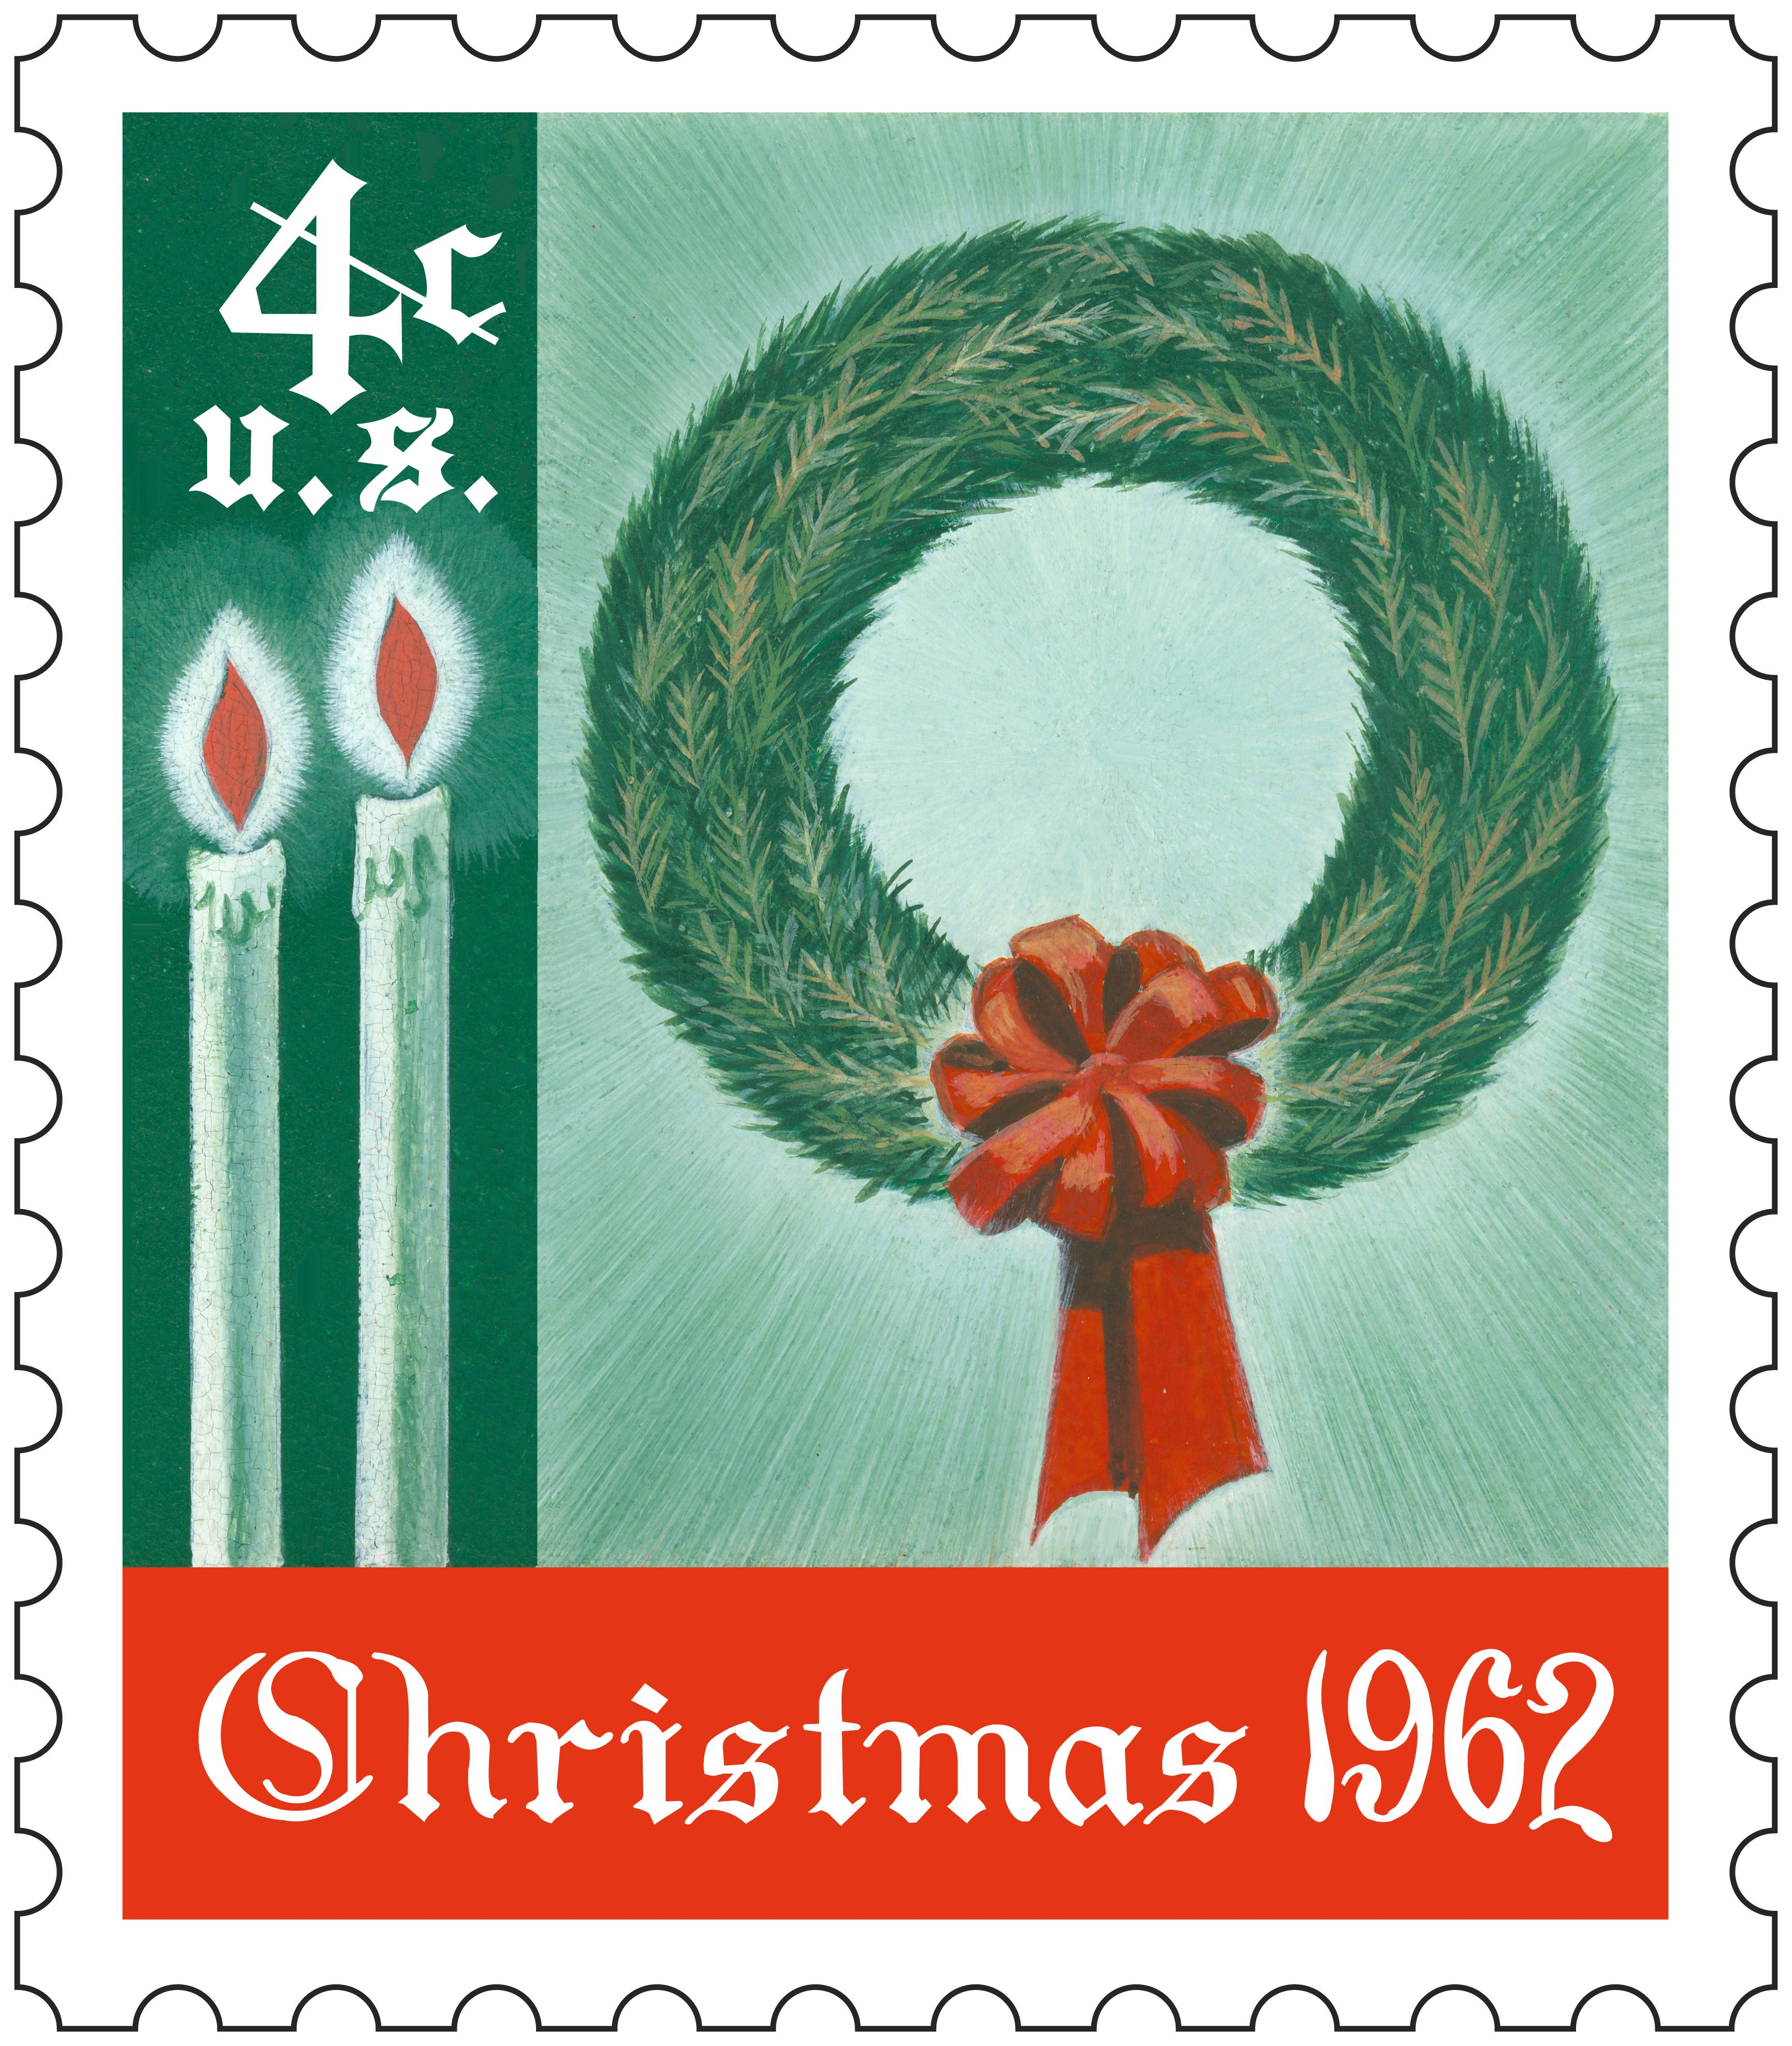 The first U.S. Christmas stamp was issued in 1962 and